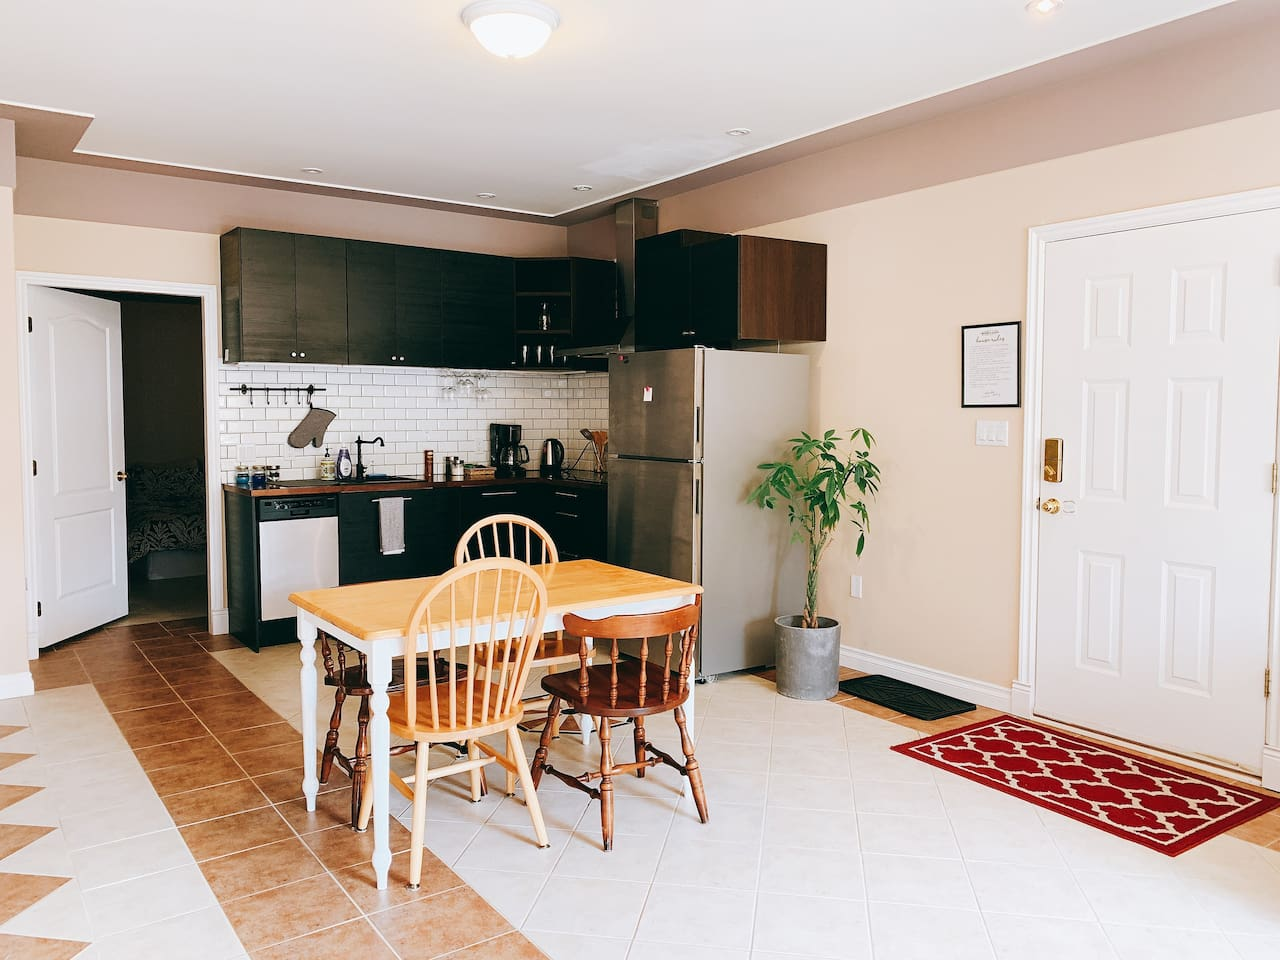 Open plan kitchen with dining table and 4 chairs.